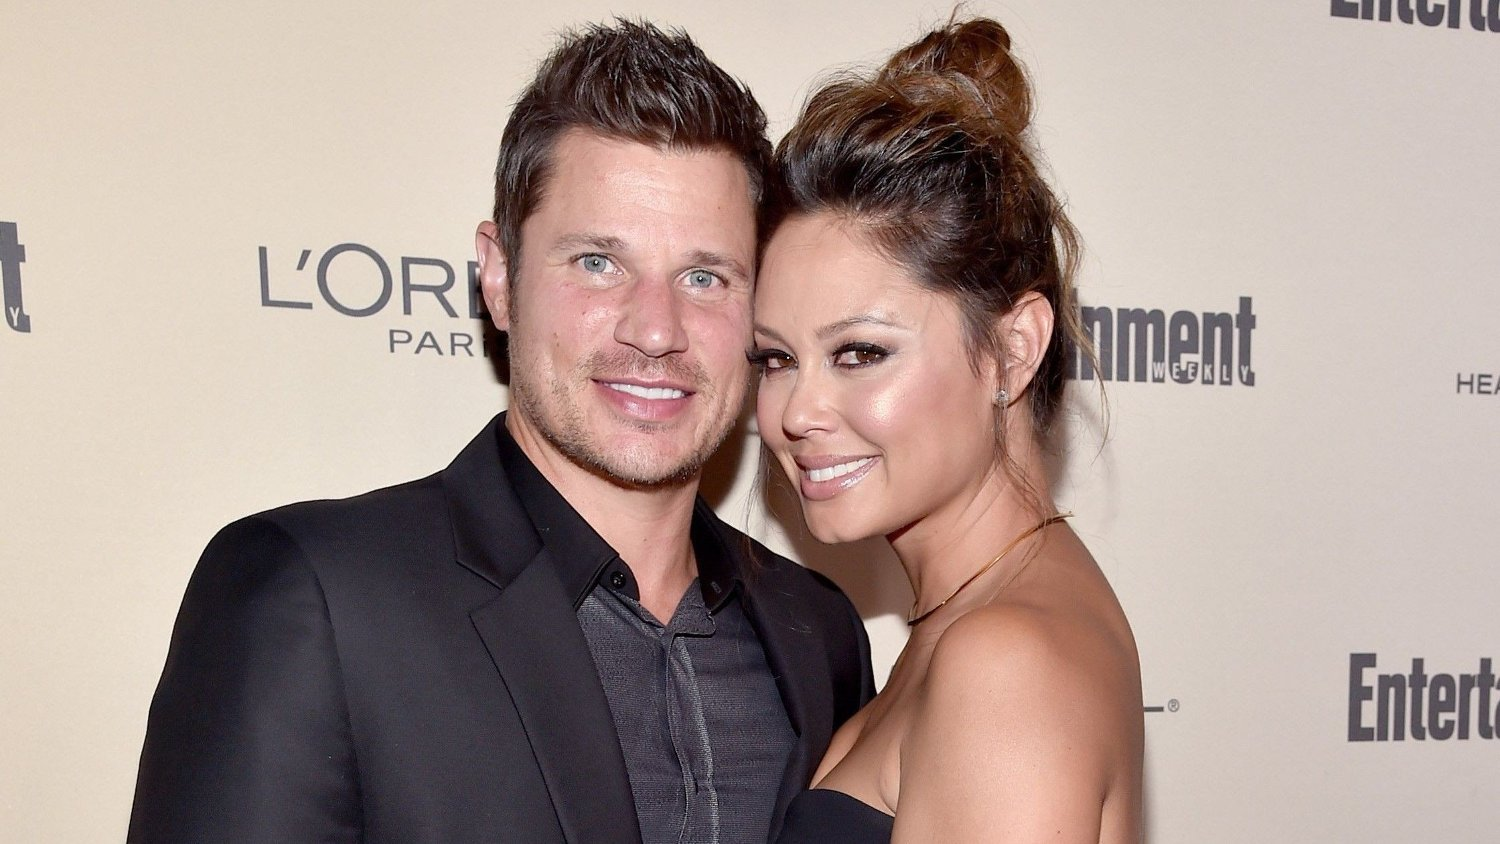 2015 Entertainment Weekly Pre-Emmy Party - Red Carpet WEST HOLLYWOOD, CA - SEPTEMBER 18: Recording artist Nick Lachey and tv personality Vanessa Lachey attend the 2015 Entertainment Weekly Pre-Emmy Party at Fig & Olive Melrose Place on September 18, 2015 in West Hollywood, California. Alberto E. Rodriguez/Getty Images for Entertainment Weekly/AFP == FOR NEWSPAPERS, INTERNET, TELCOS & TELEVISION USE ONLY ==